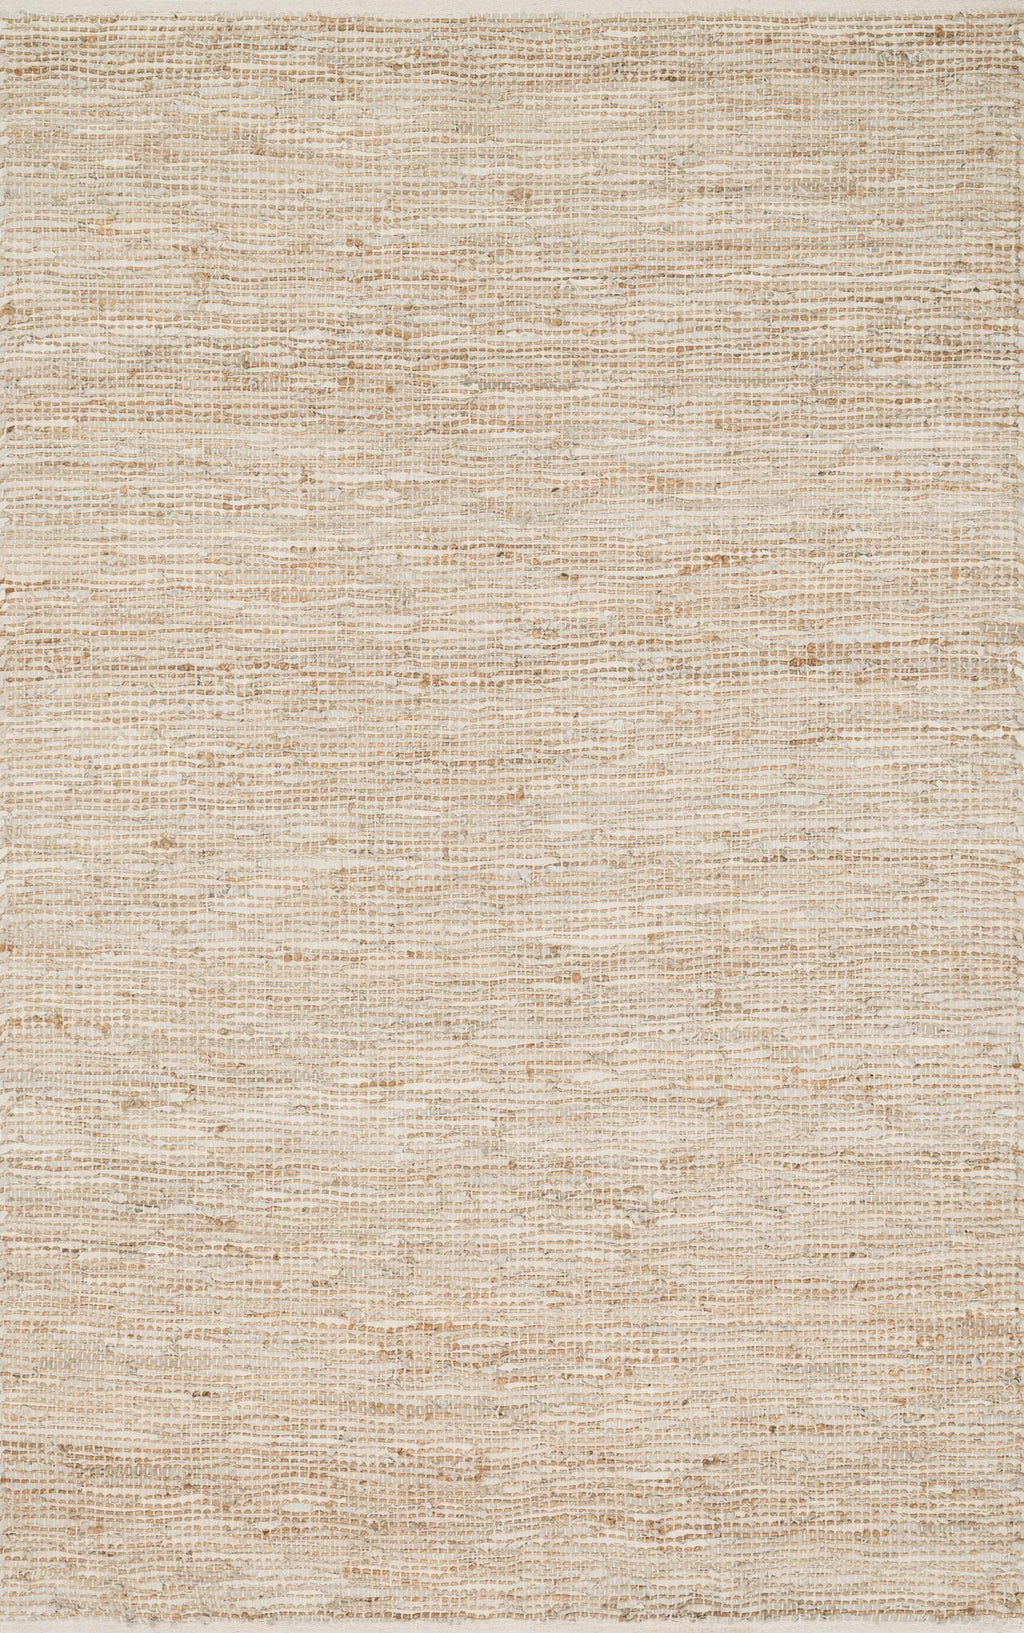 EDGE Collection Rug  in  IVORY Ivory Small Hand-Woven Jute/Hemp